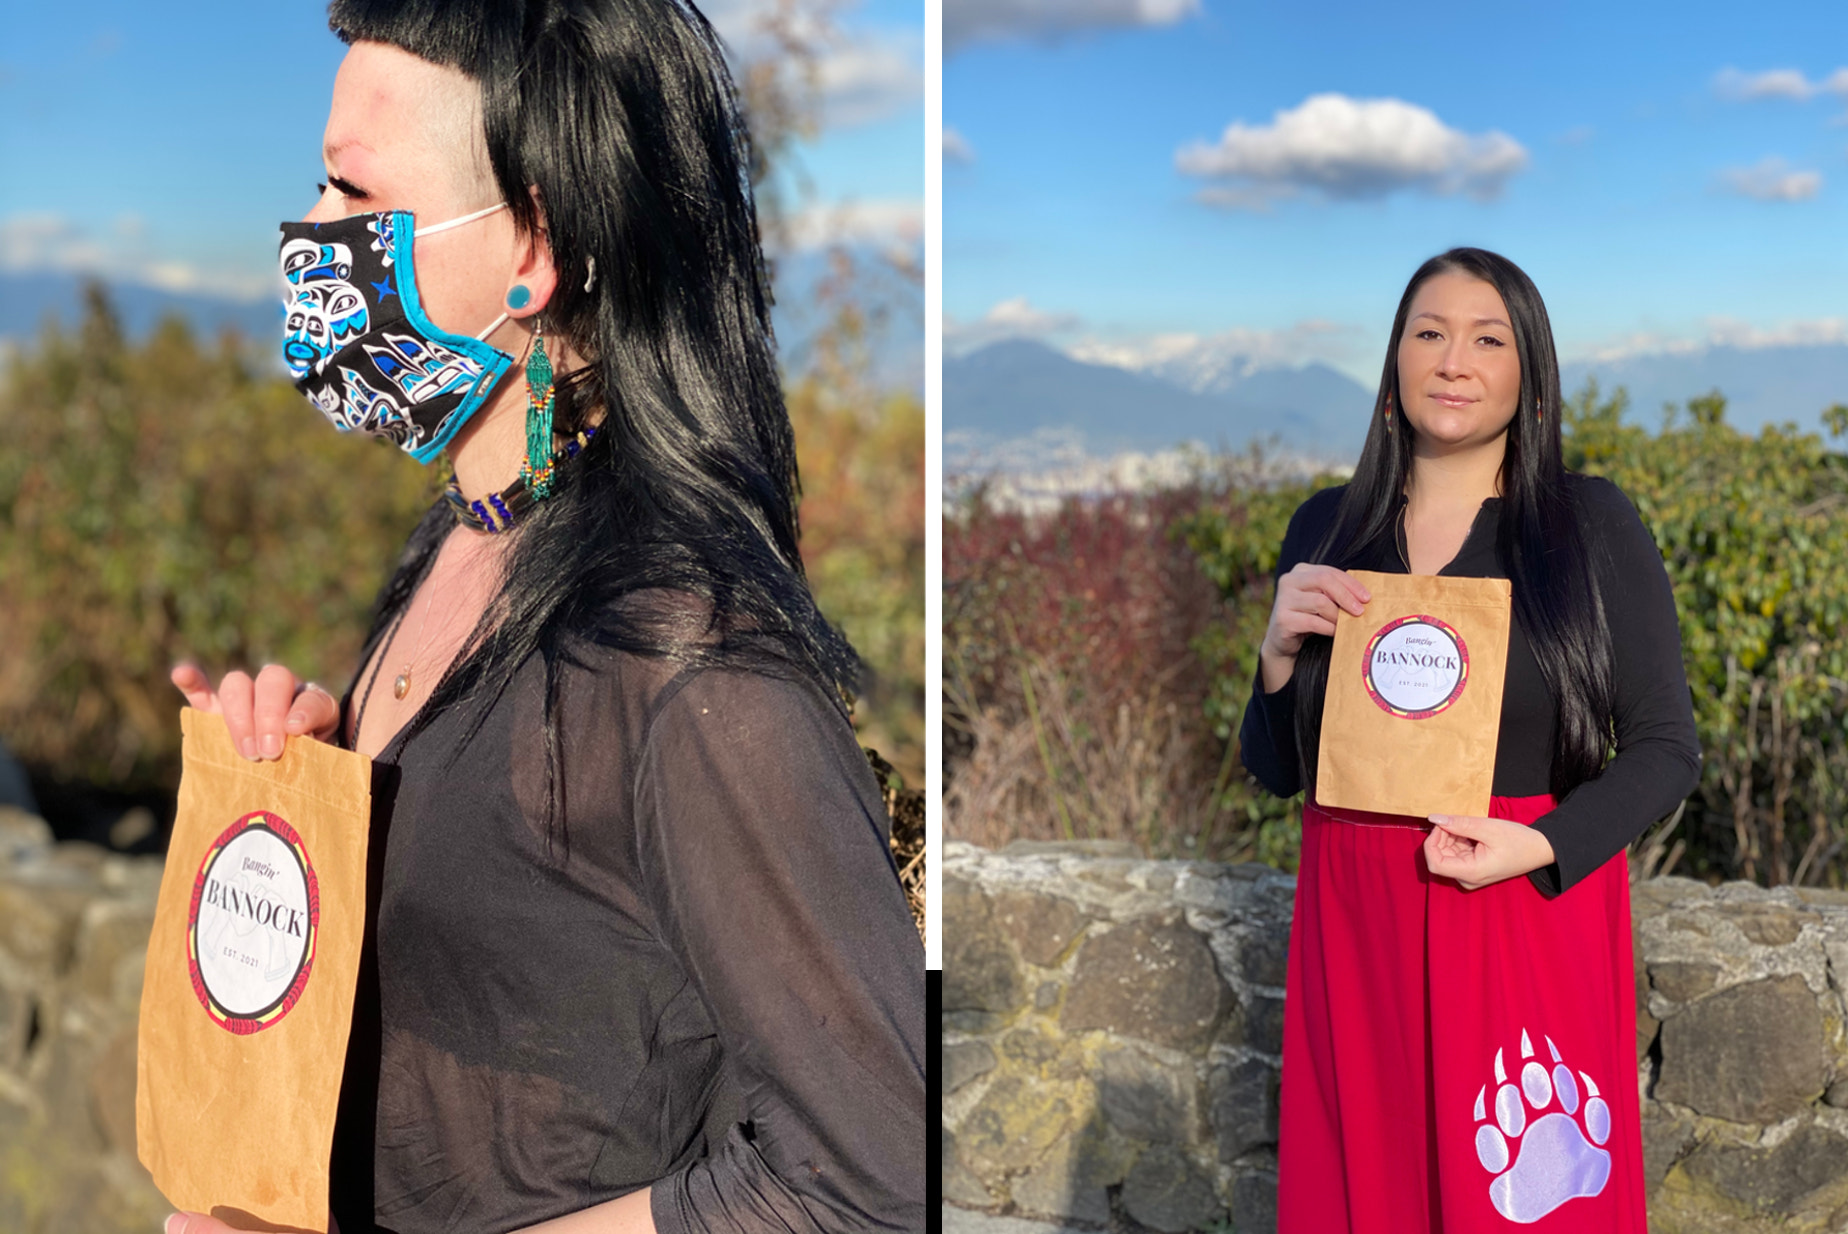 Founders Kelsey Coutts and Destiny Hoostie pictured with Bangin Bannock product in hand.